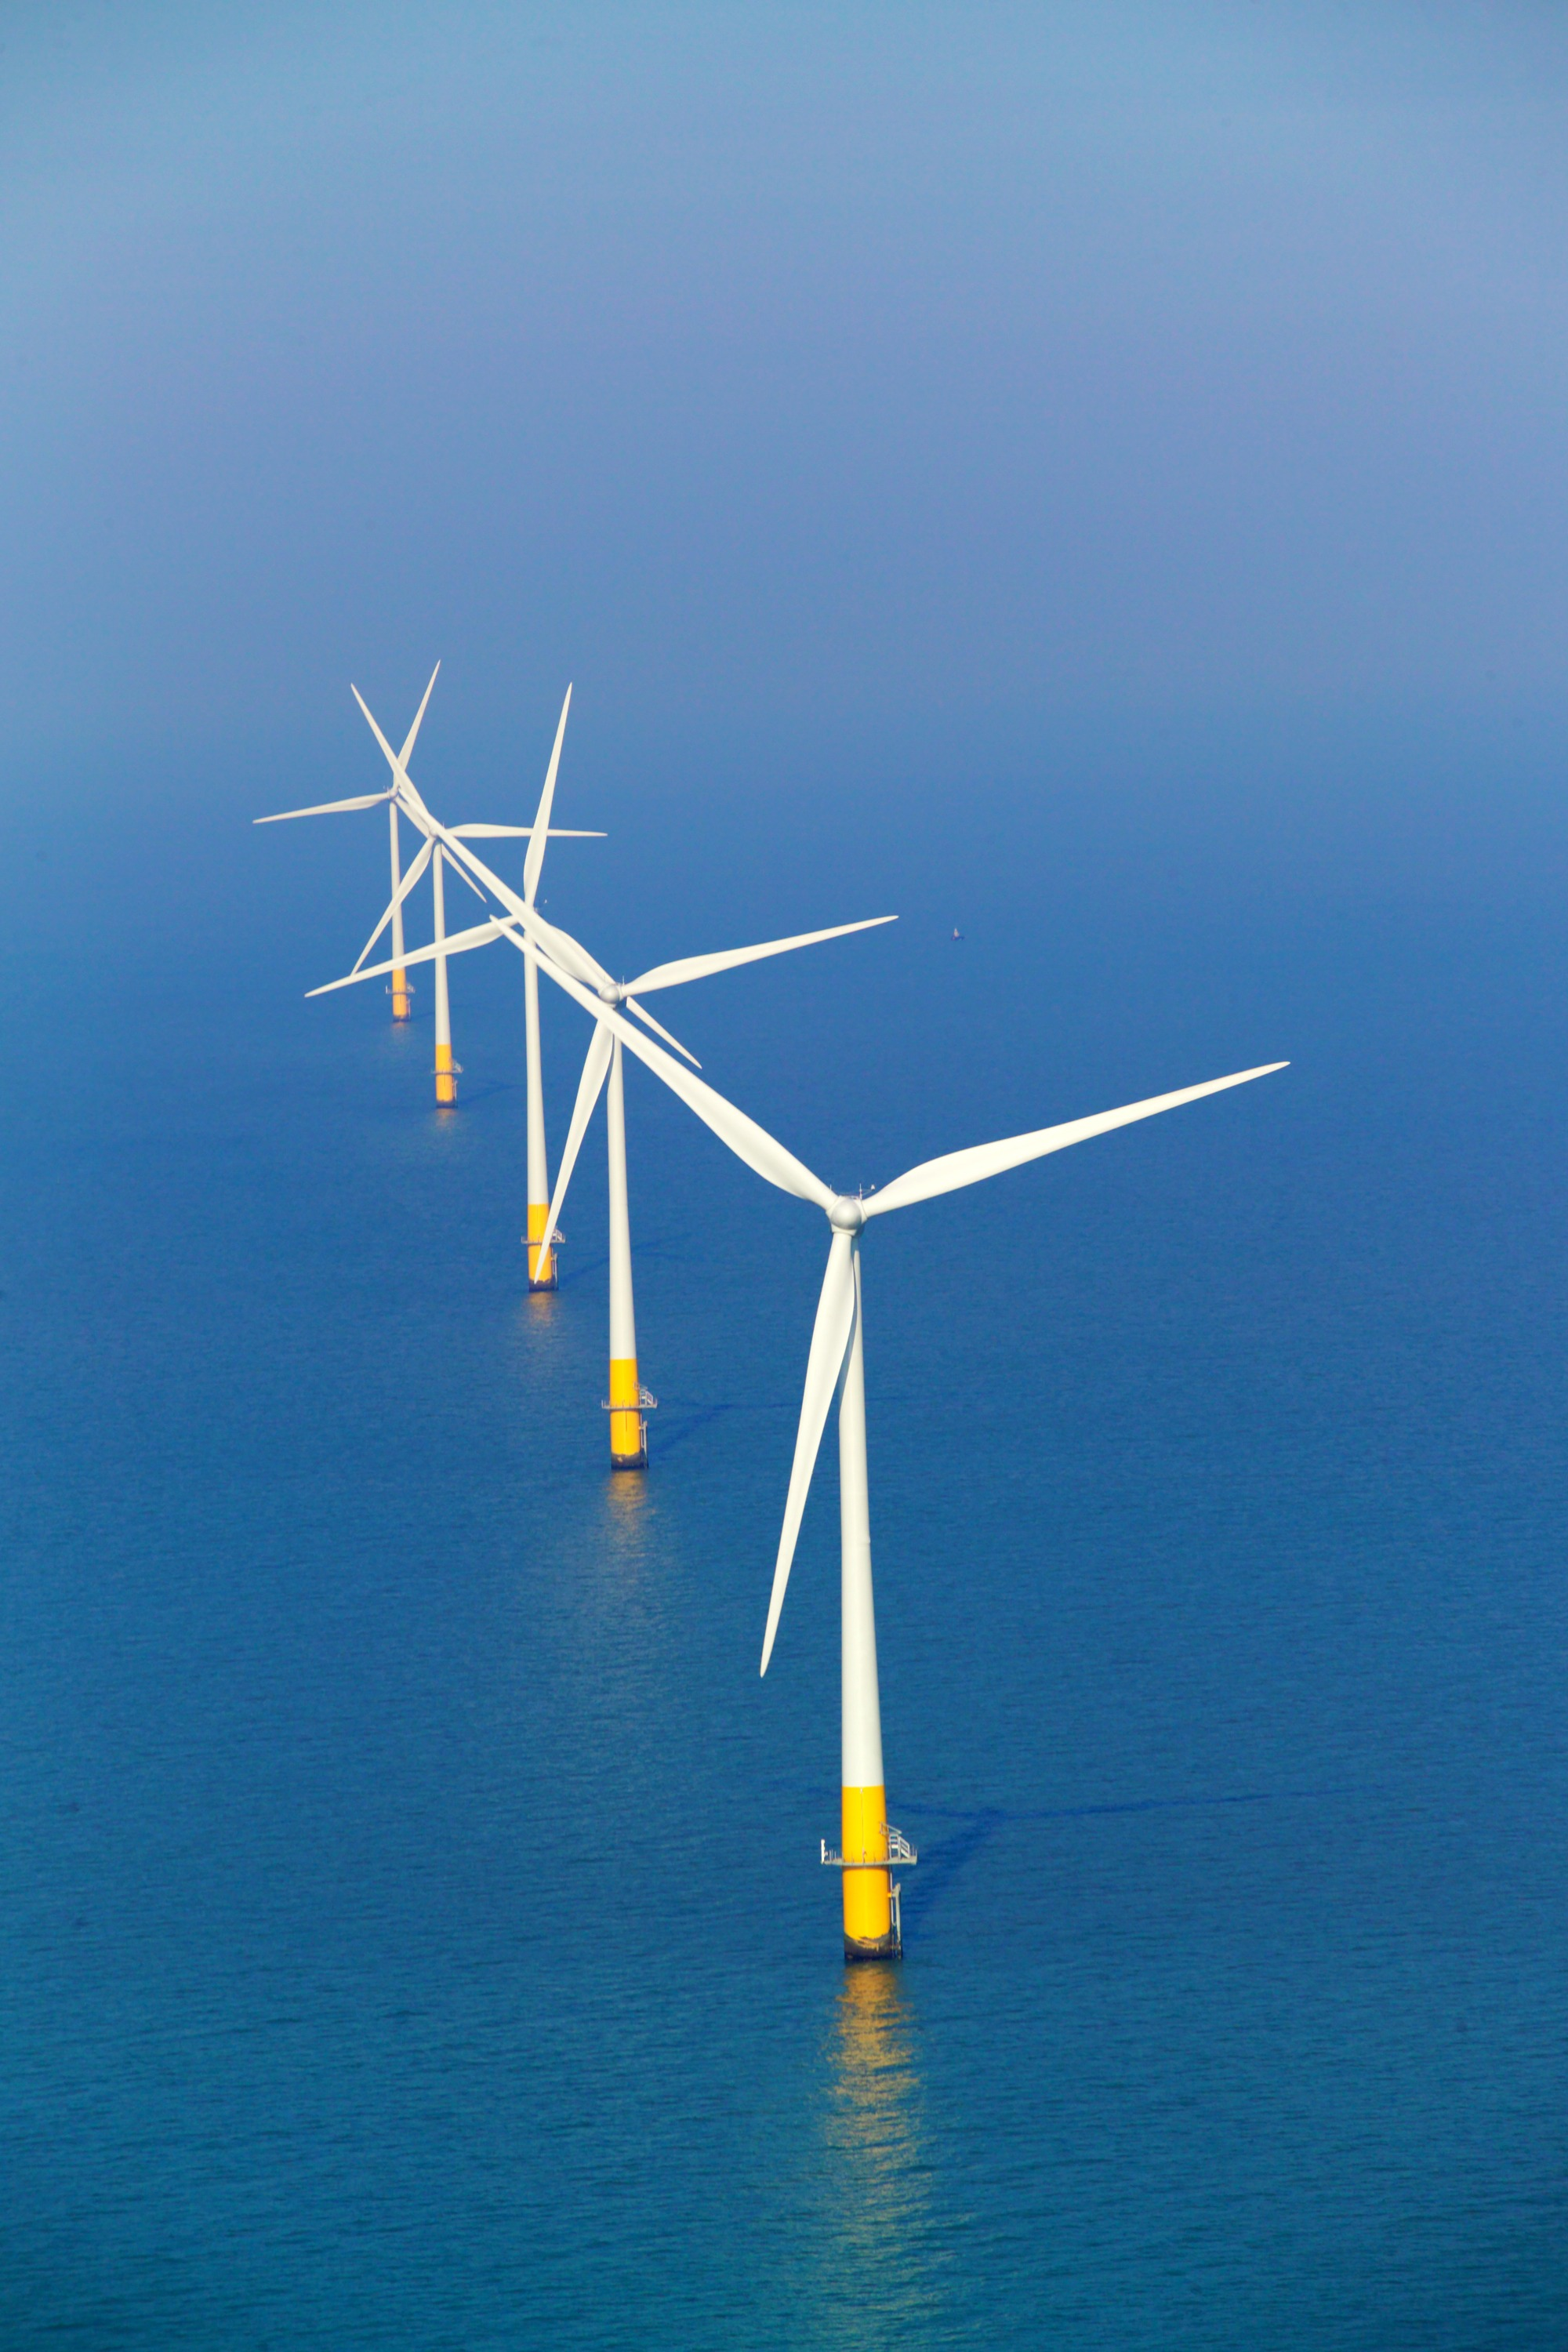 Kentish Flats wind farm extension approved by UK government